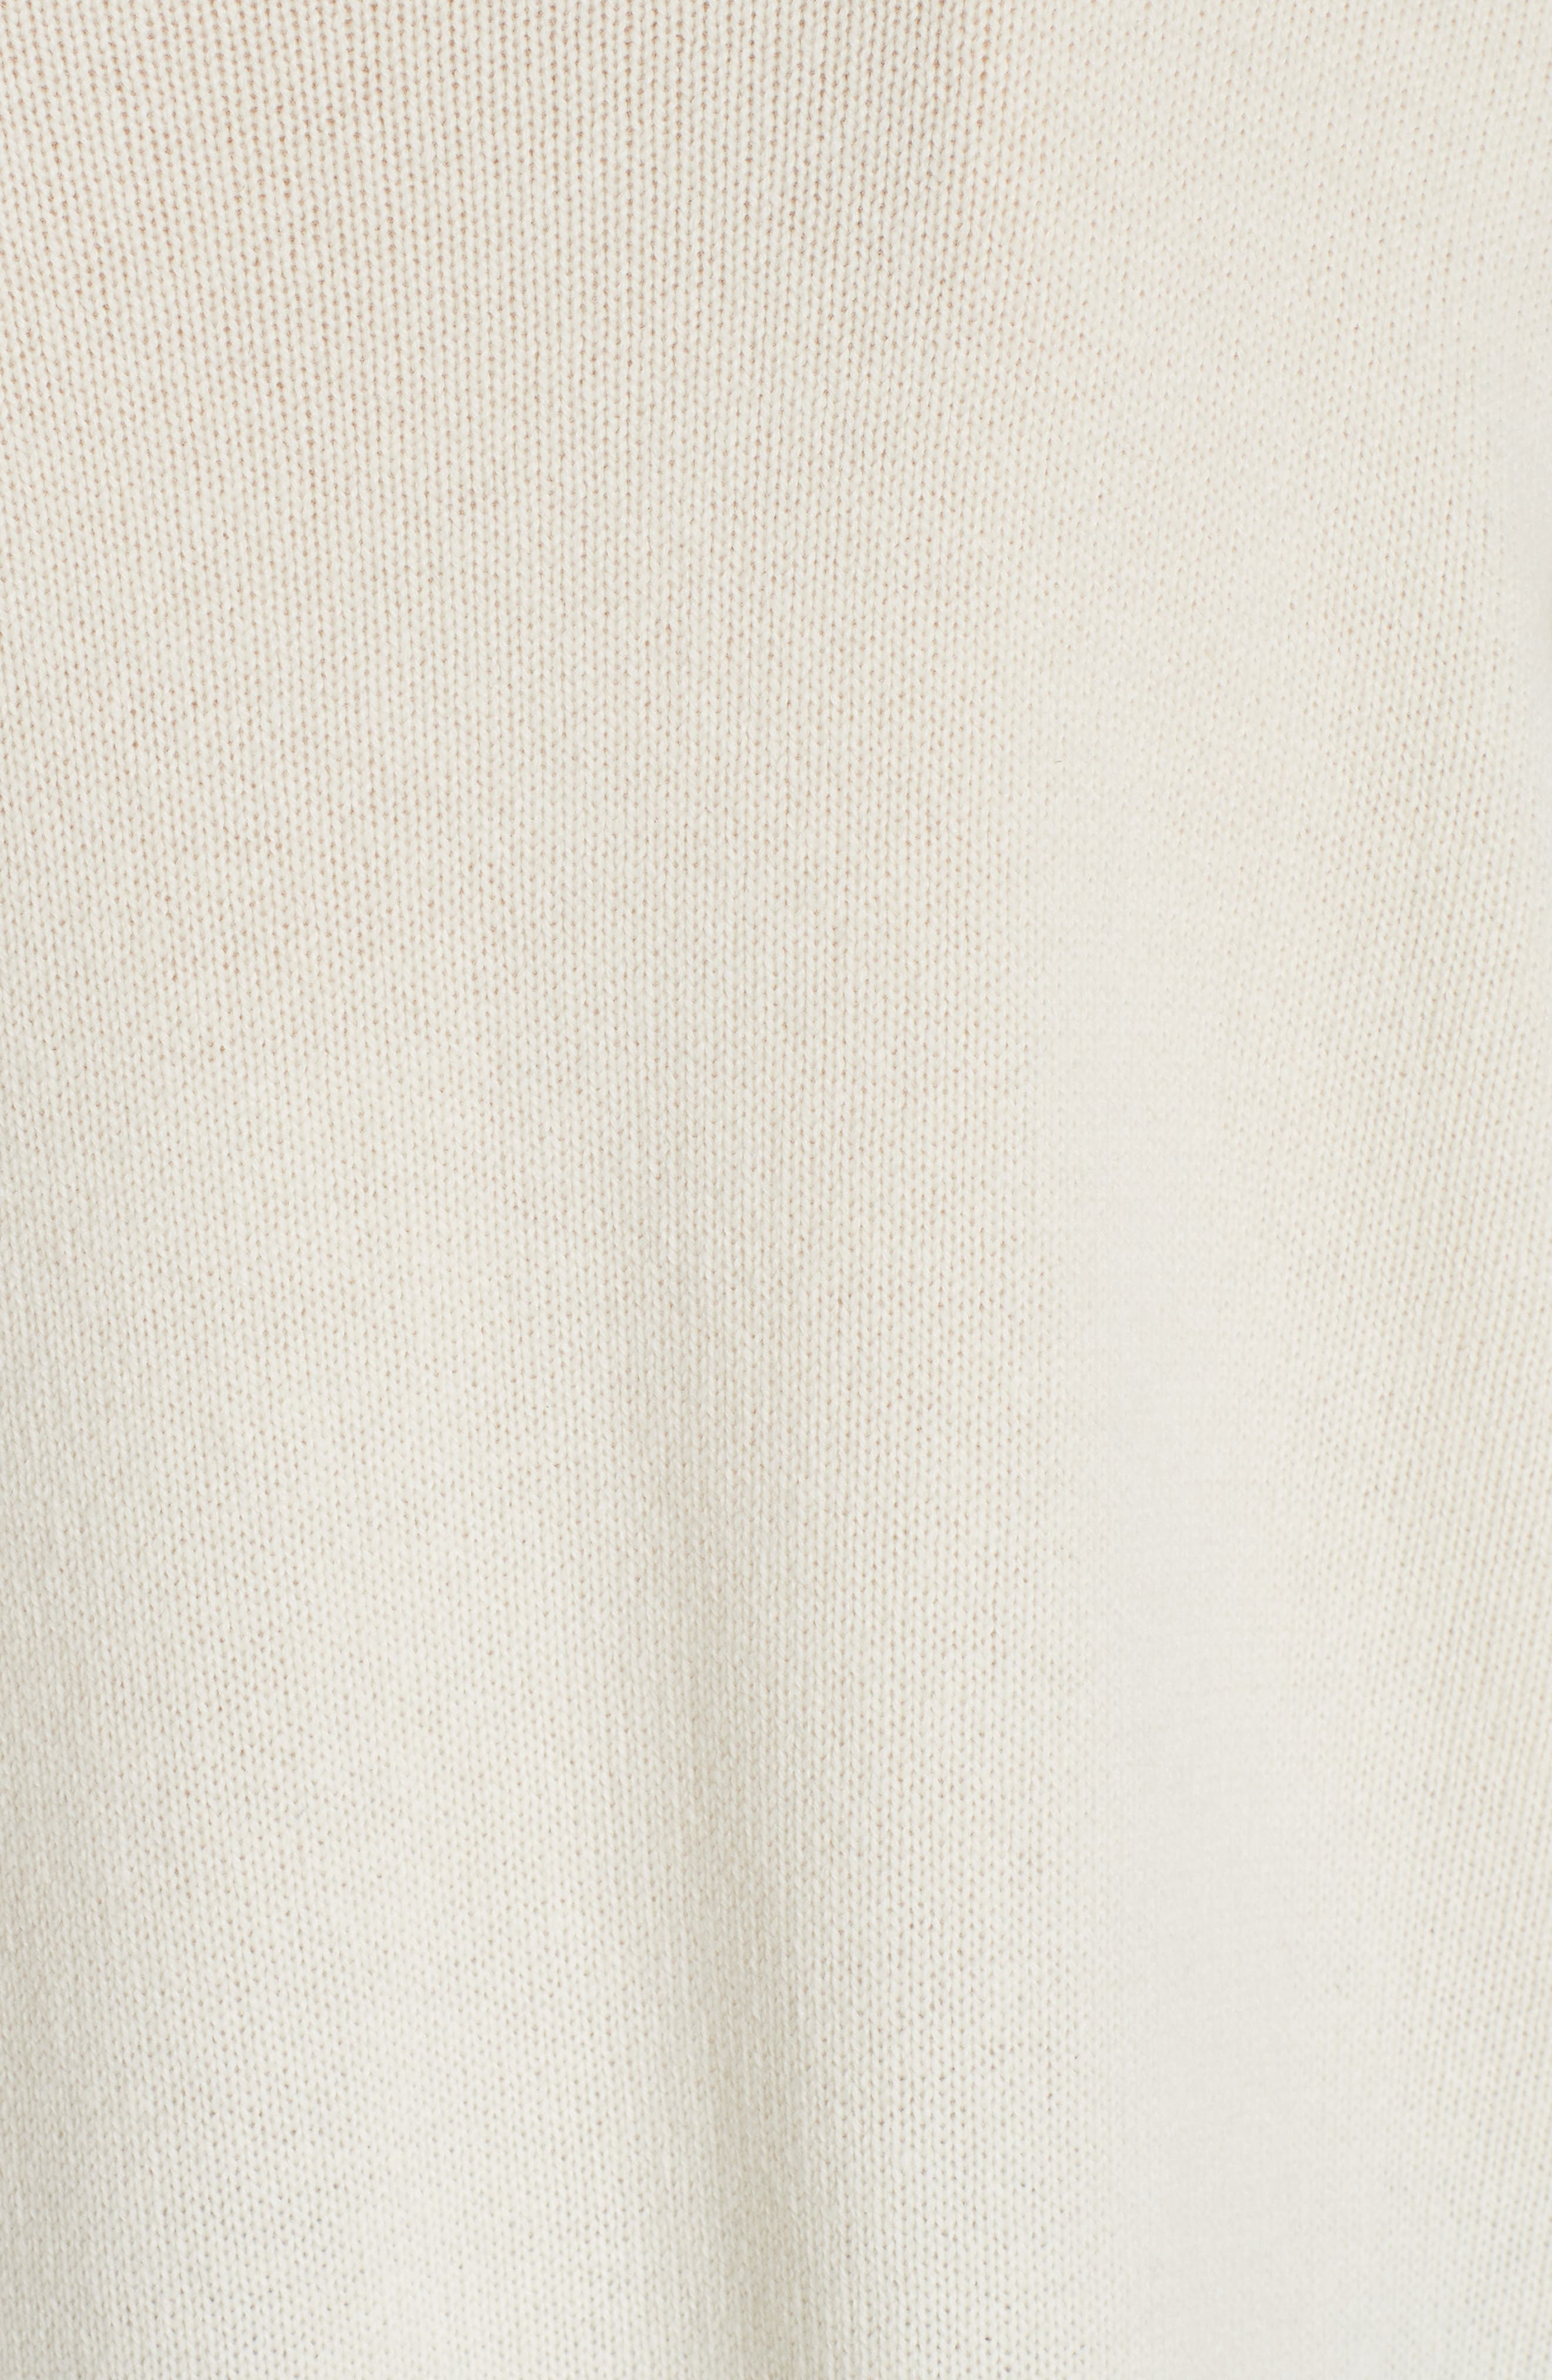 Oversize Cashmere & Wool Sweater,                             Alternate thumbnail 5, color,                             SOFT WHITE/ DARK PEARL